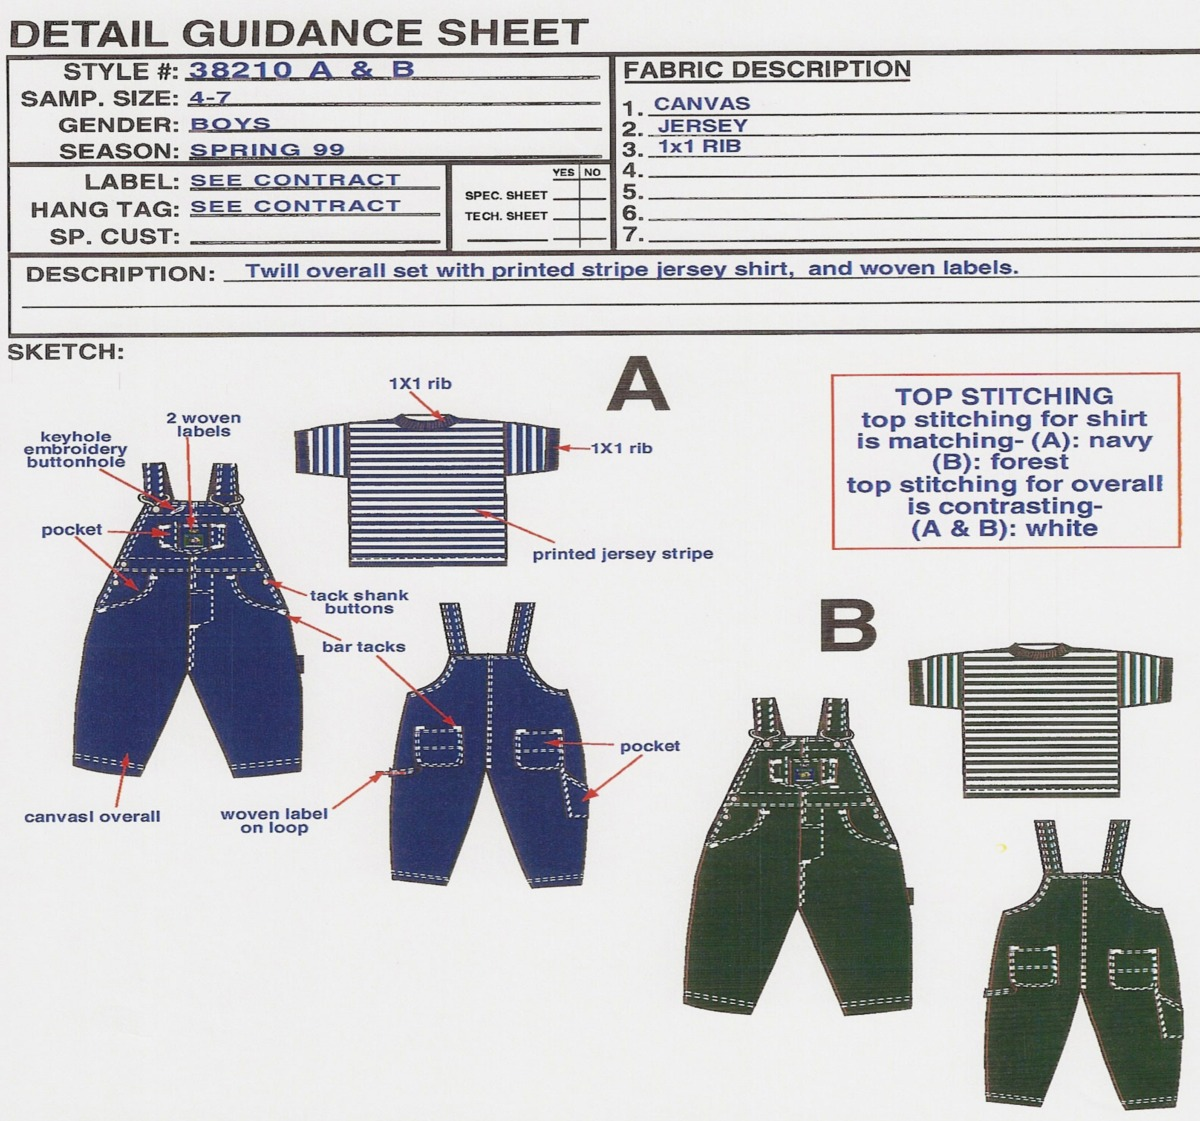 Clothing Design and Diagram for Children's Network